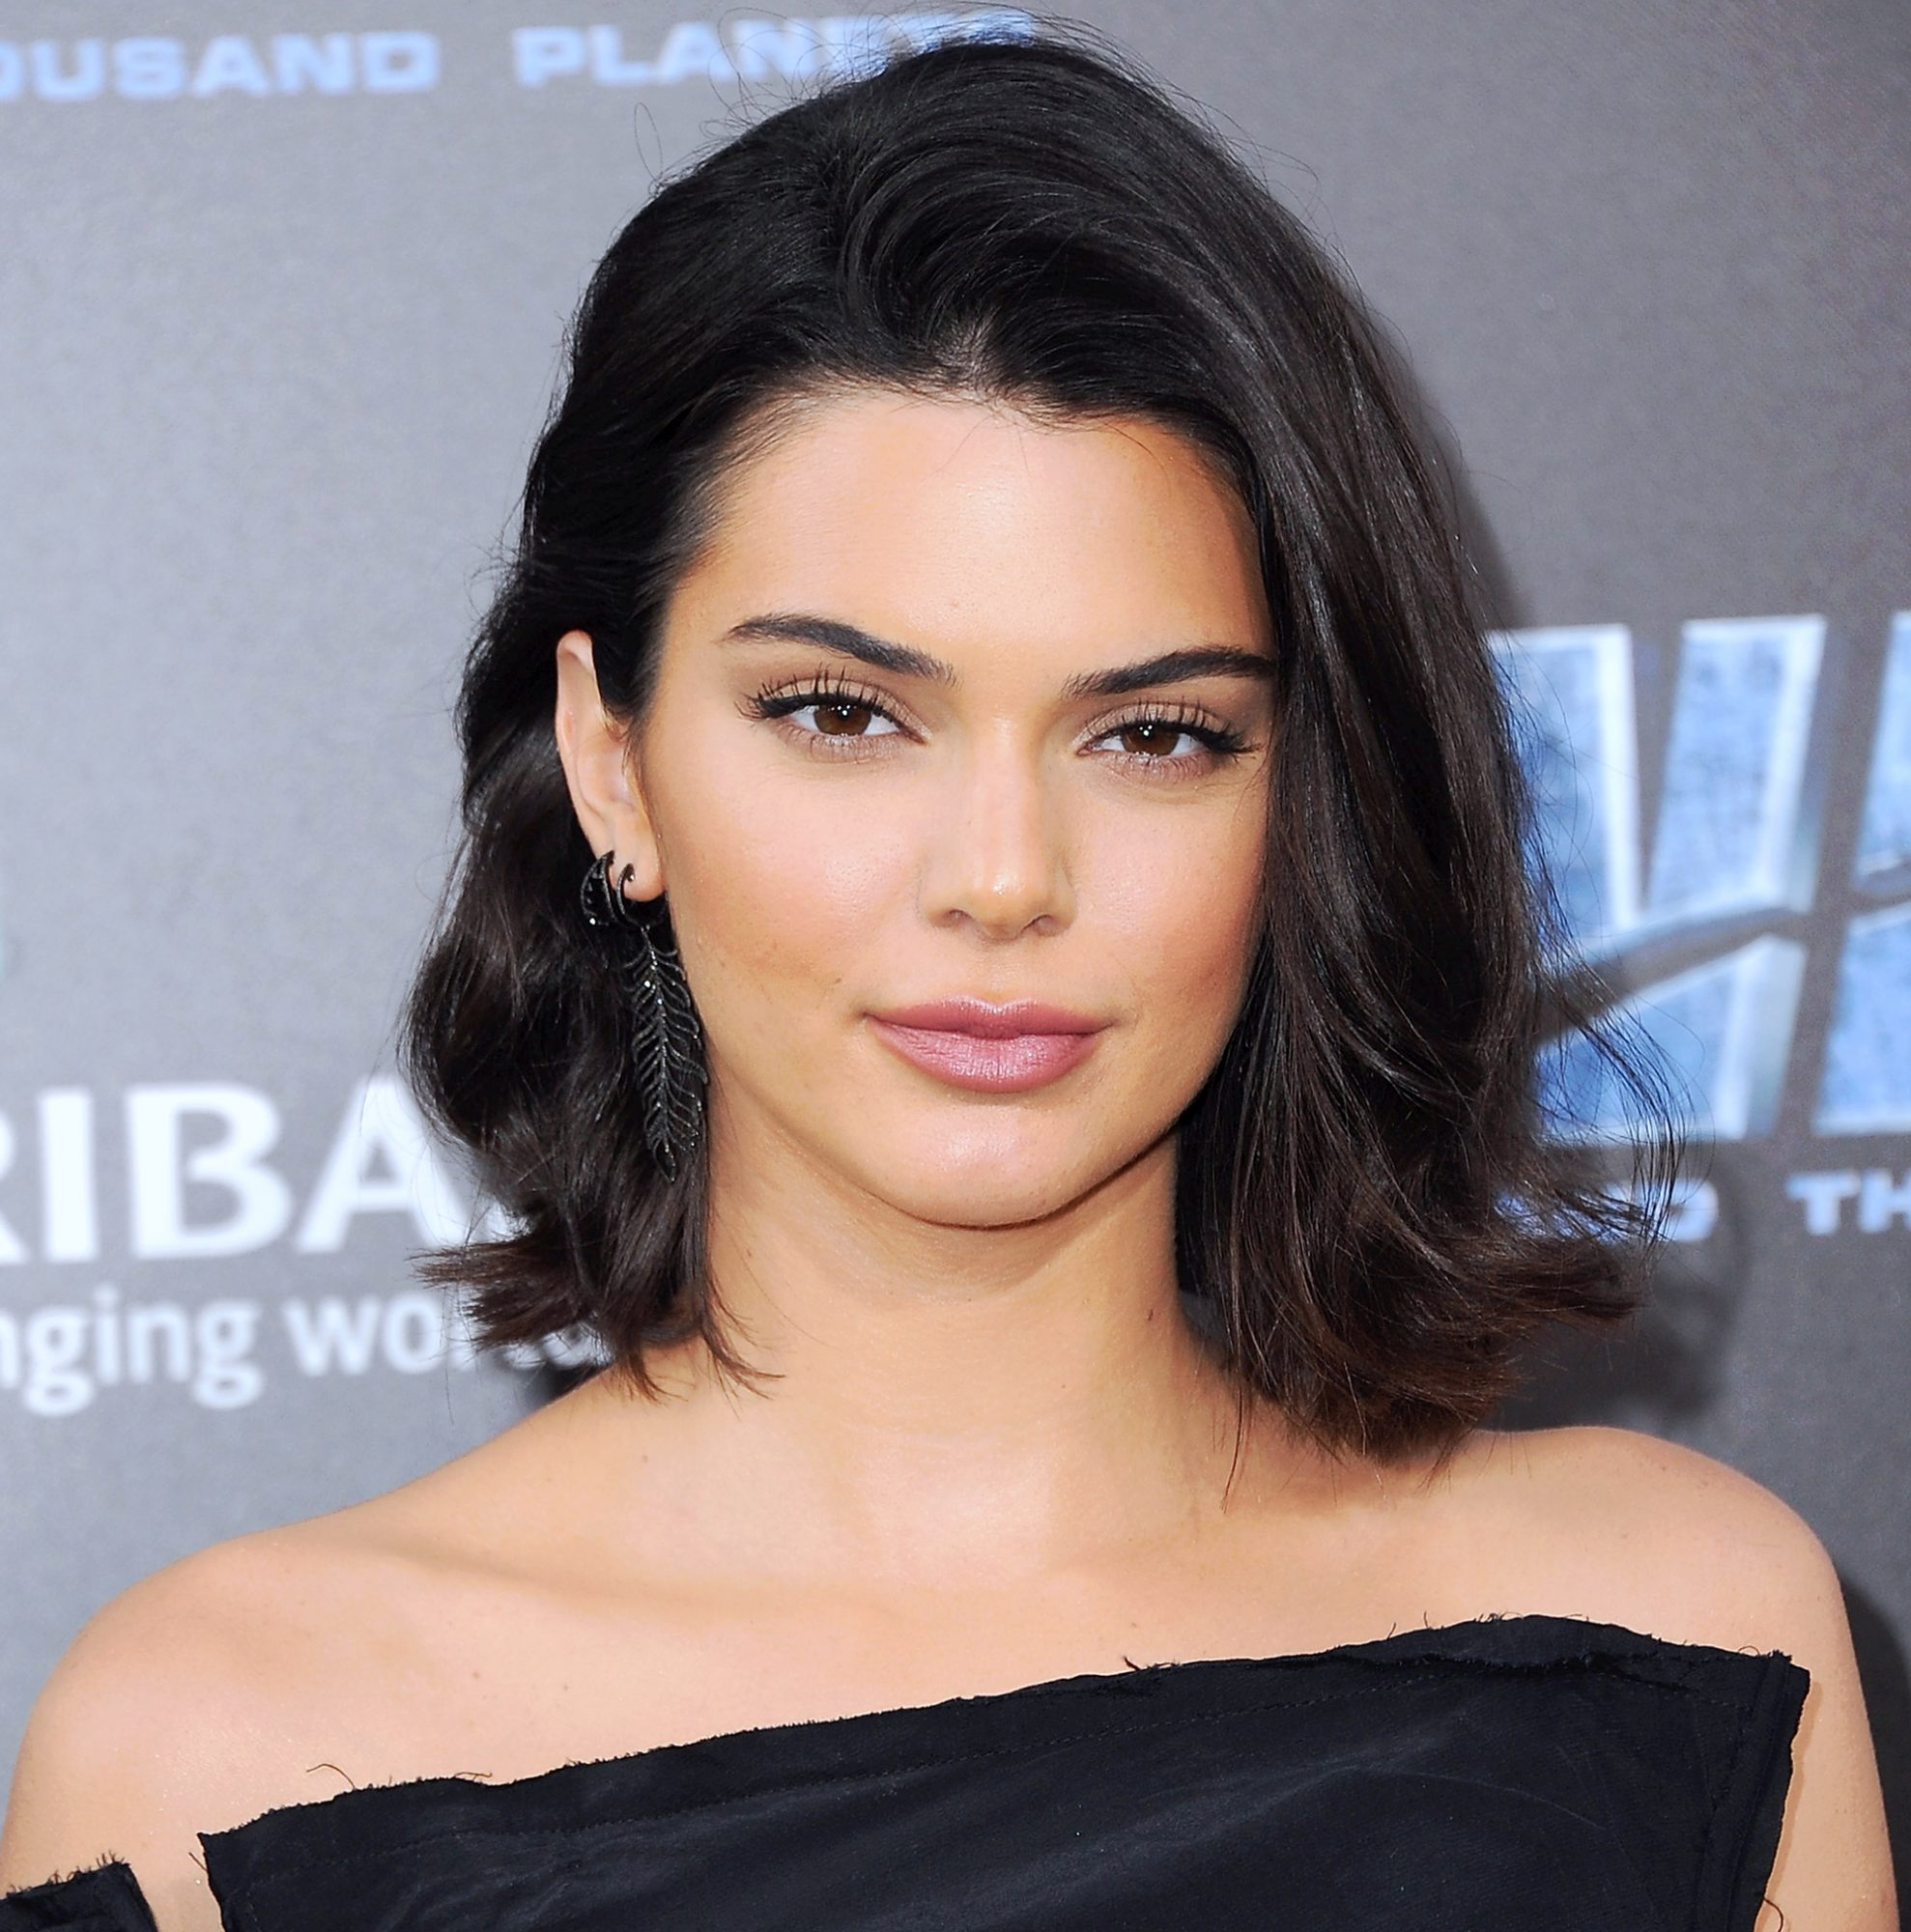 Kendall Jenner S Black Bob And Bangs Instyle Com